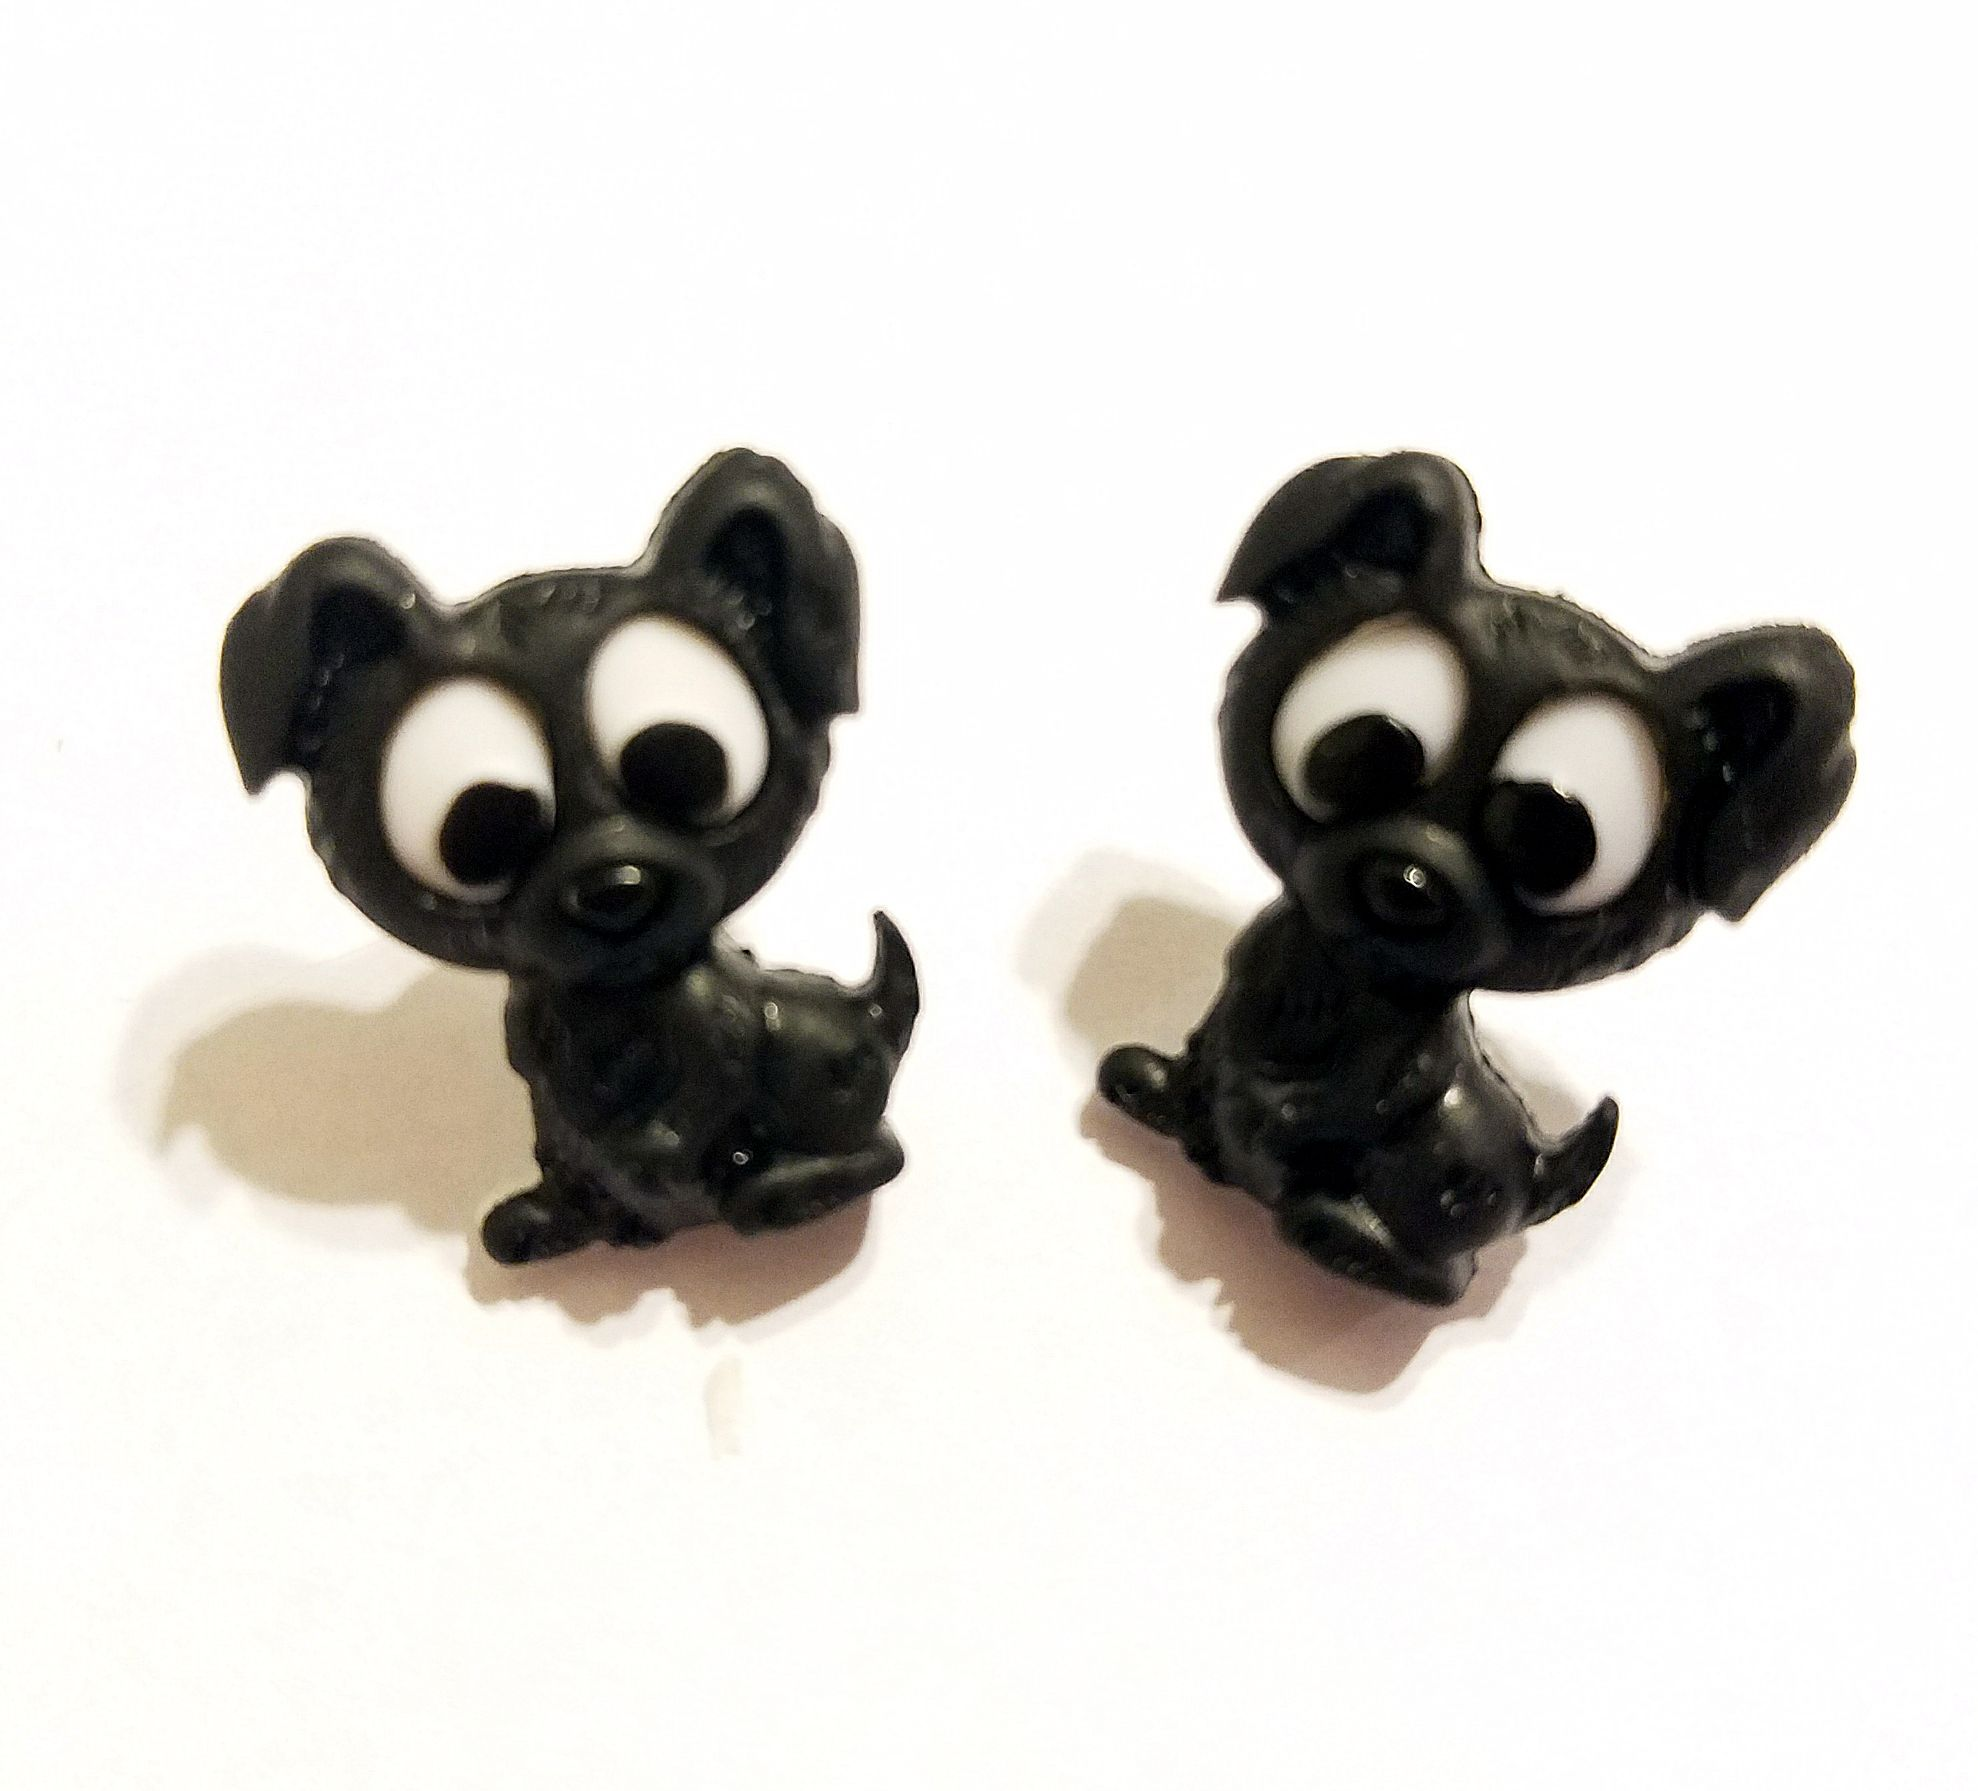 earrings jewelry dogs kriszcreations uniquegifts giftsforher blackdogs